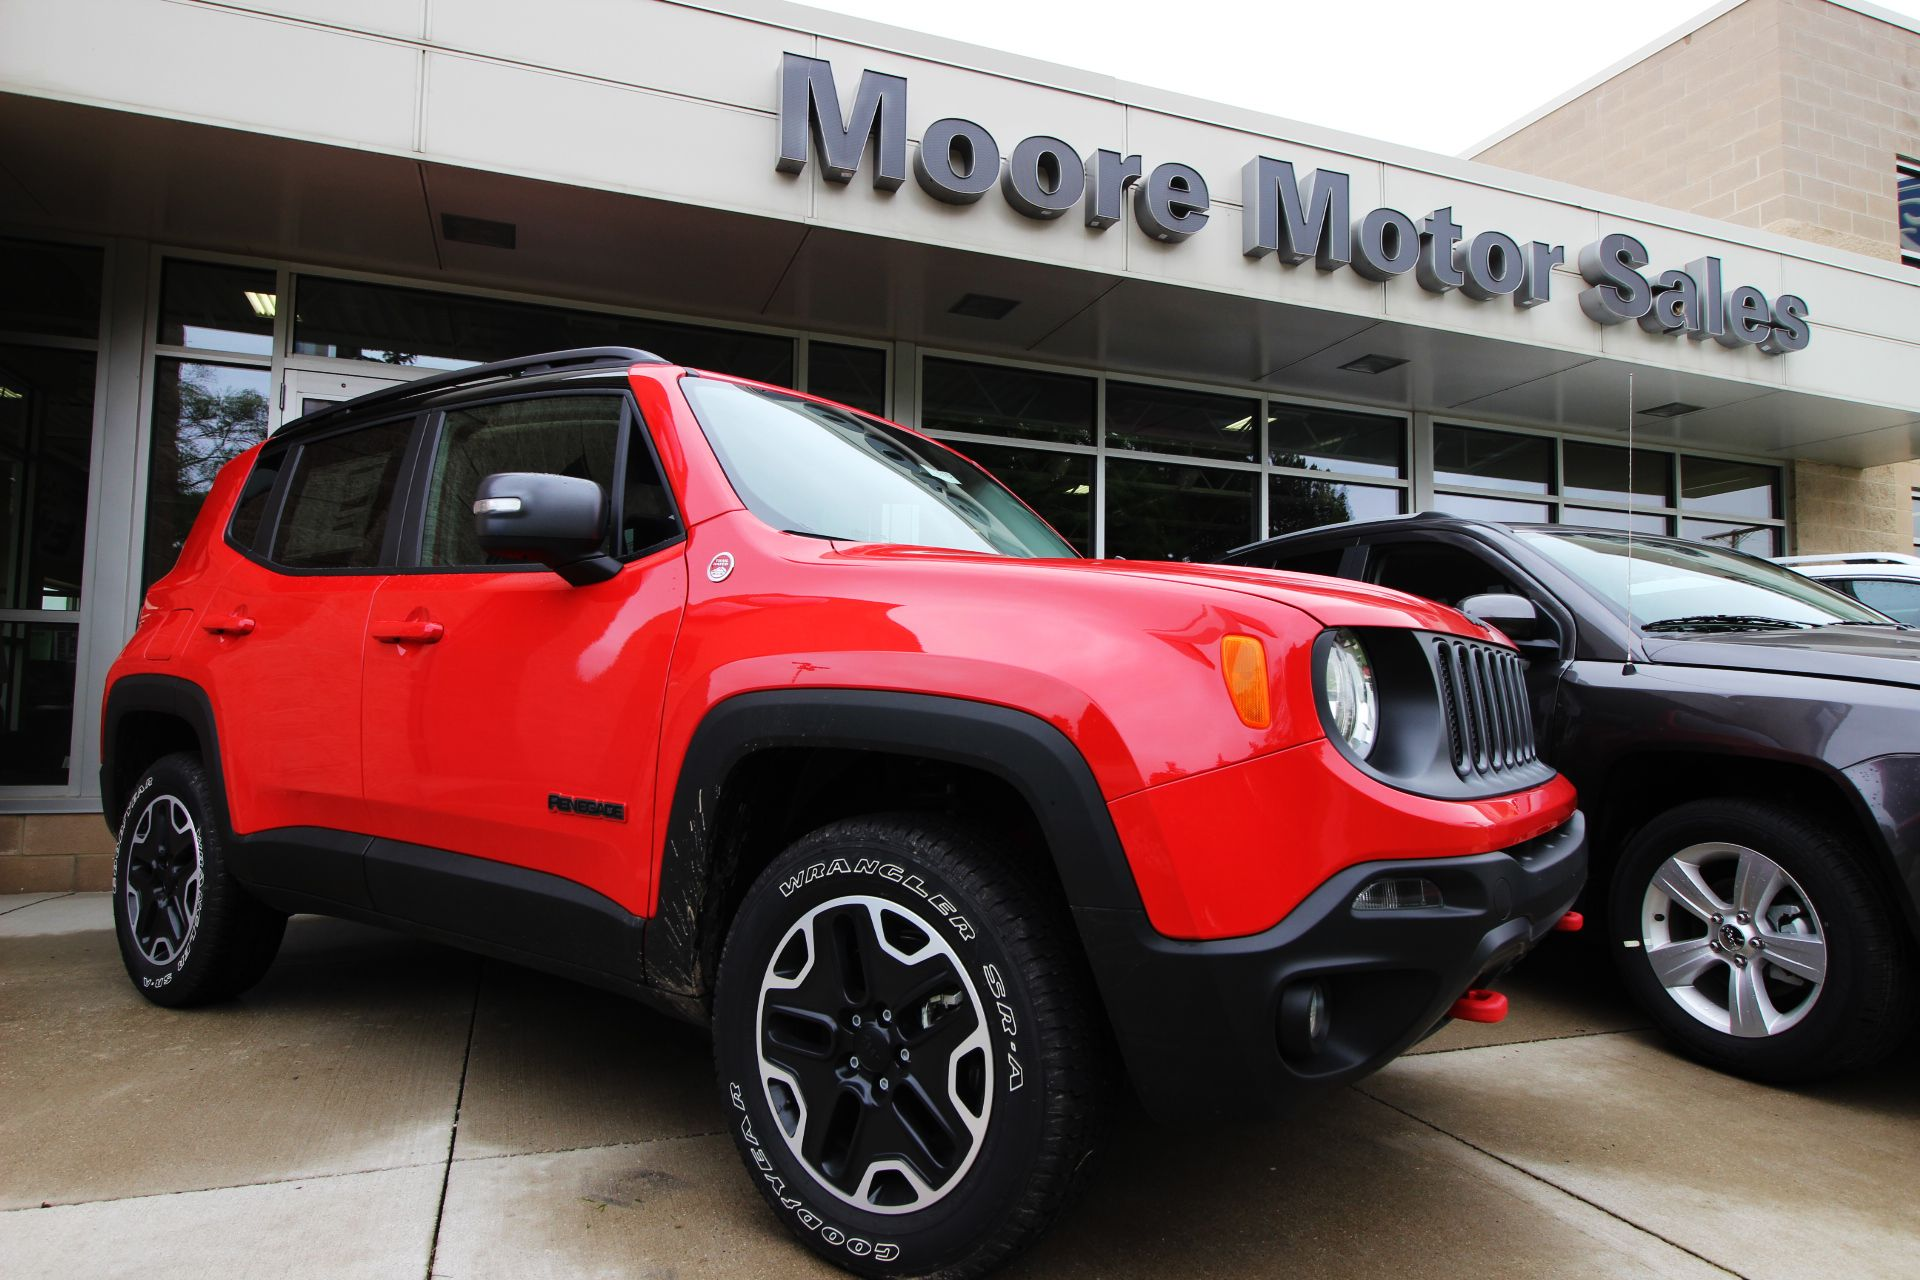 Colorado Red Jeep Renegade Trailhawk 4x4 Jeep Renegade Trailhawk